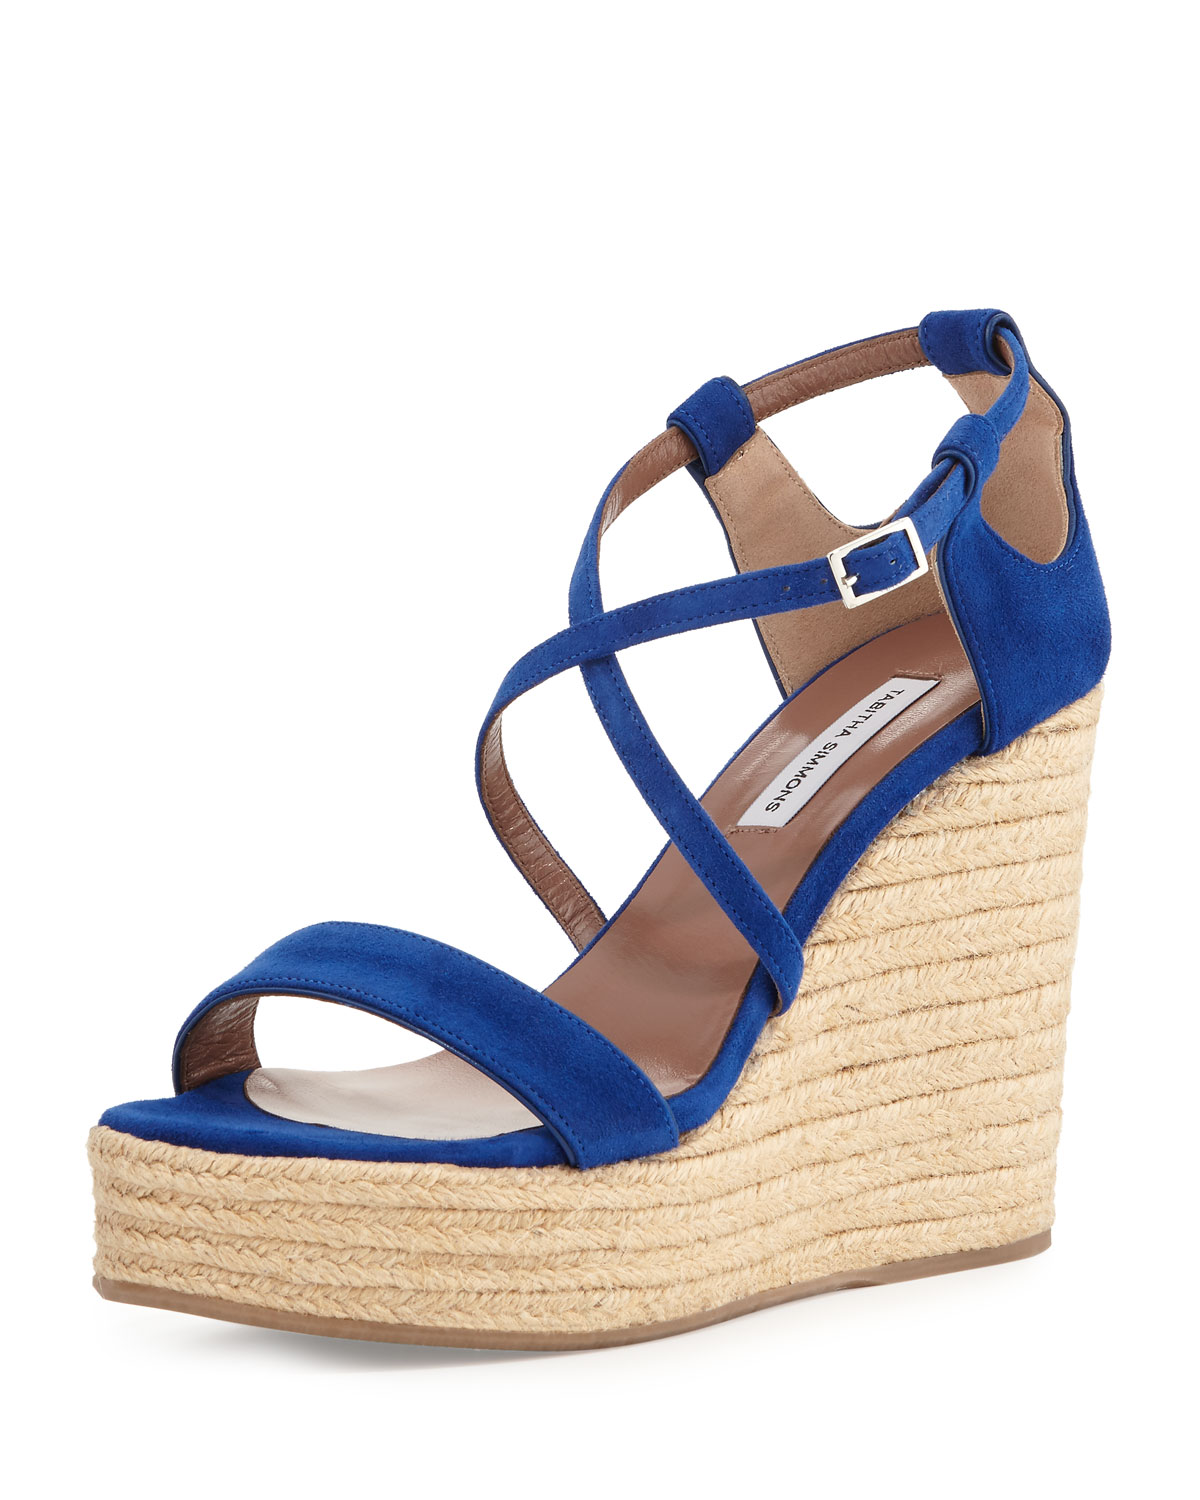 Tabitha Simmons Jenny Suede Espadrille Wedge Sandal